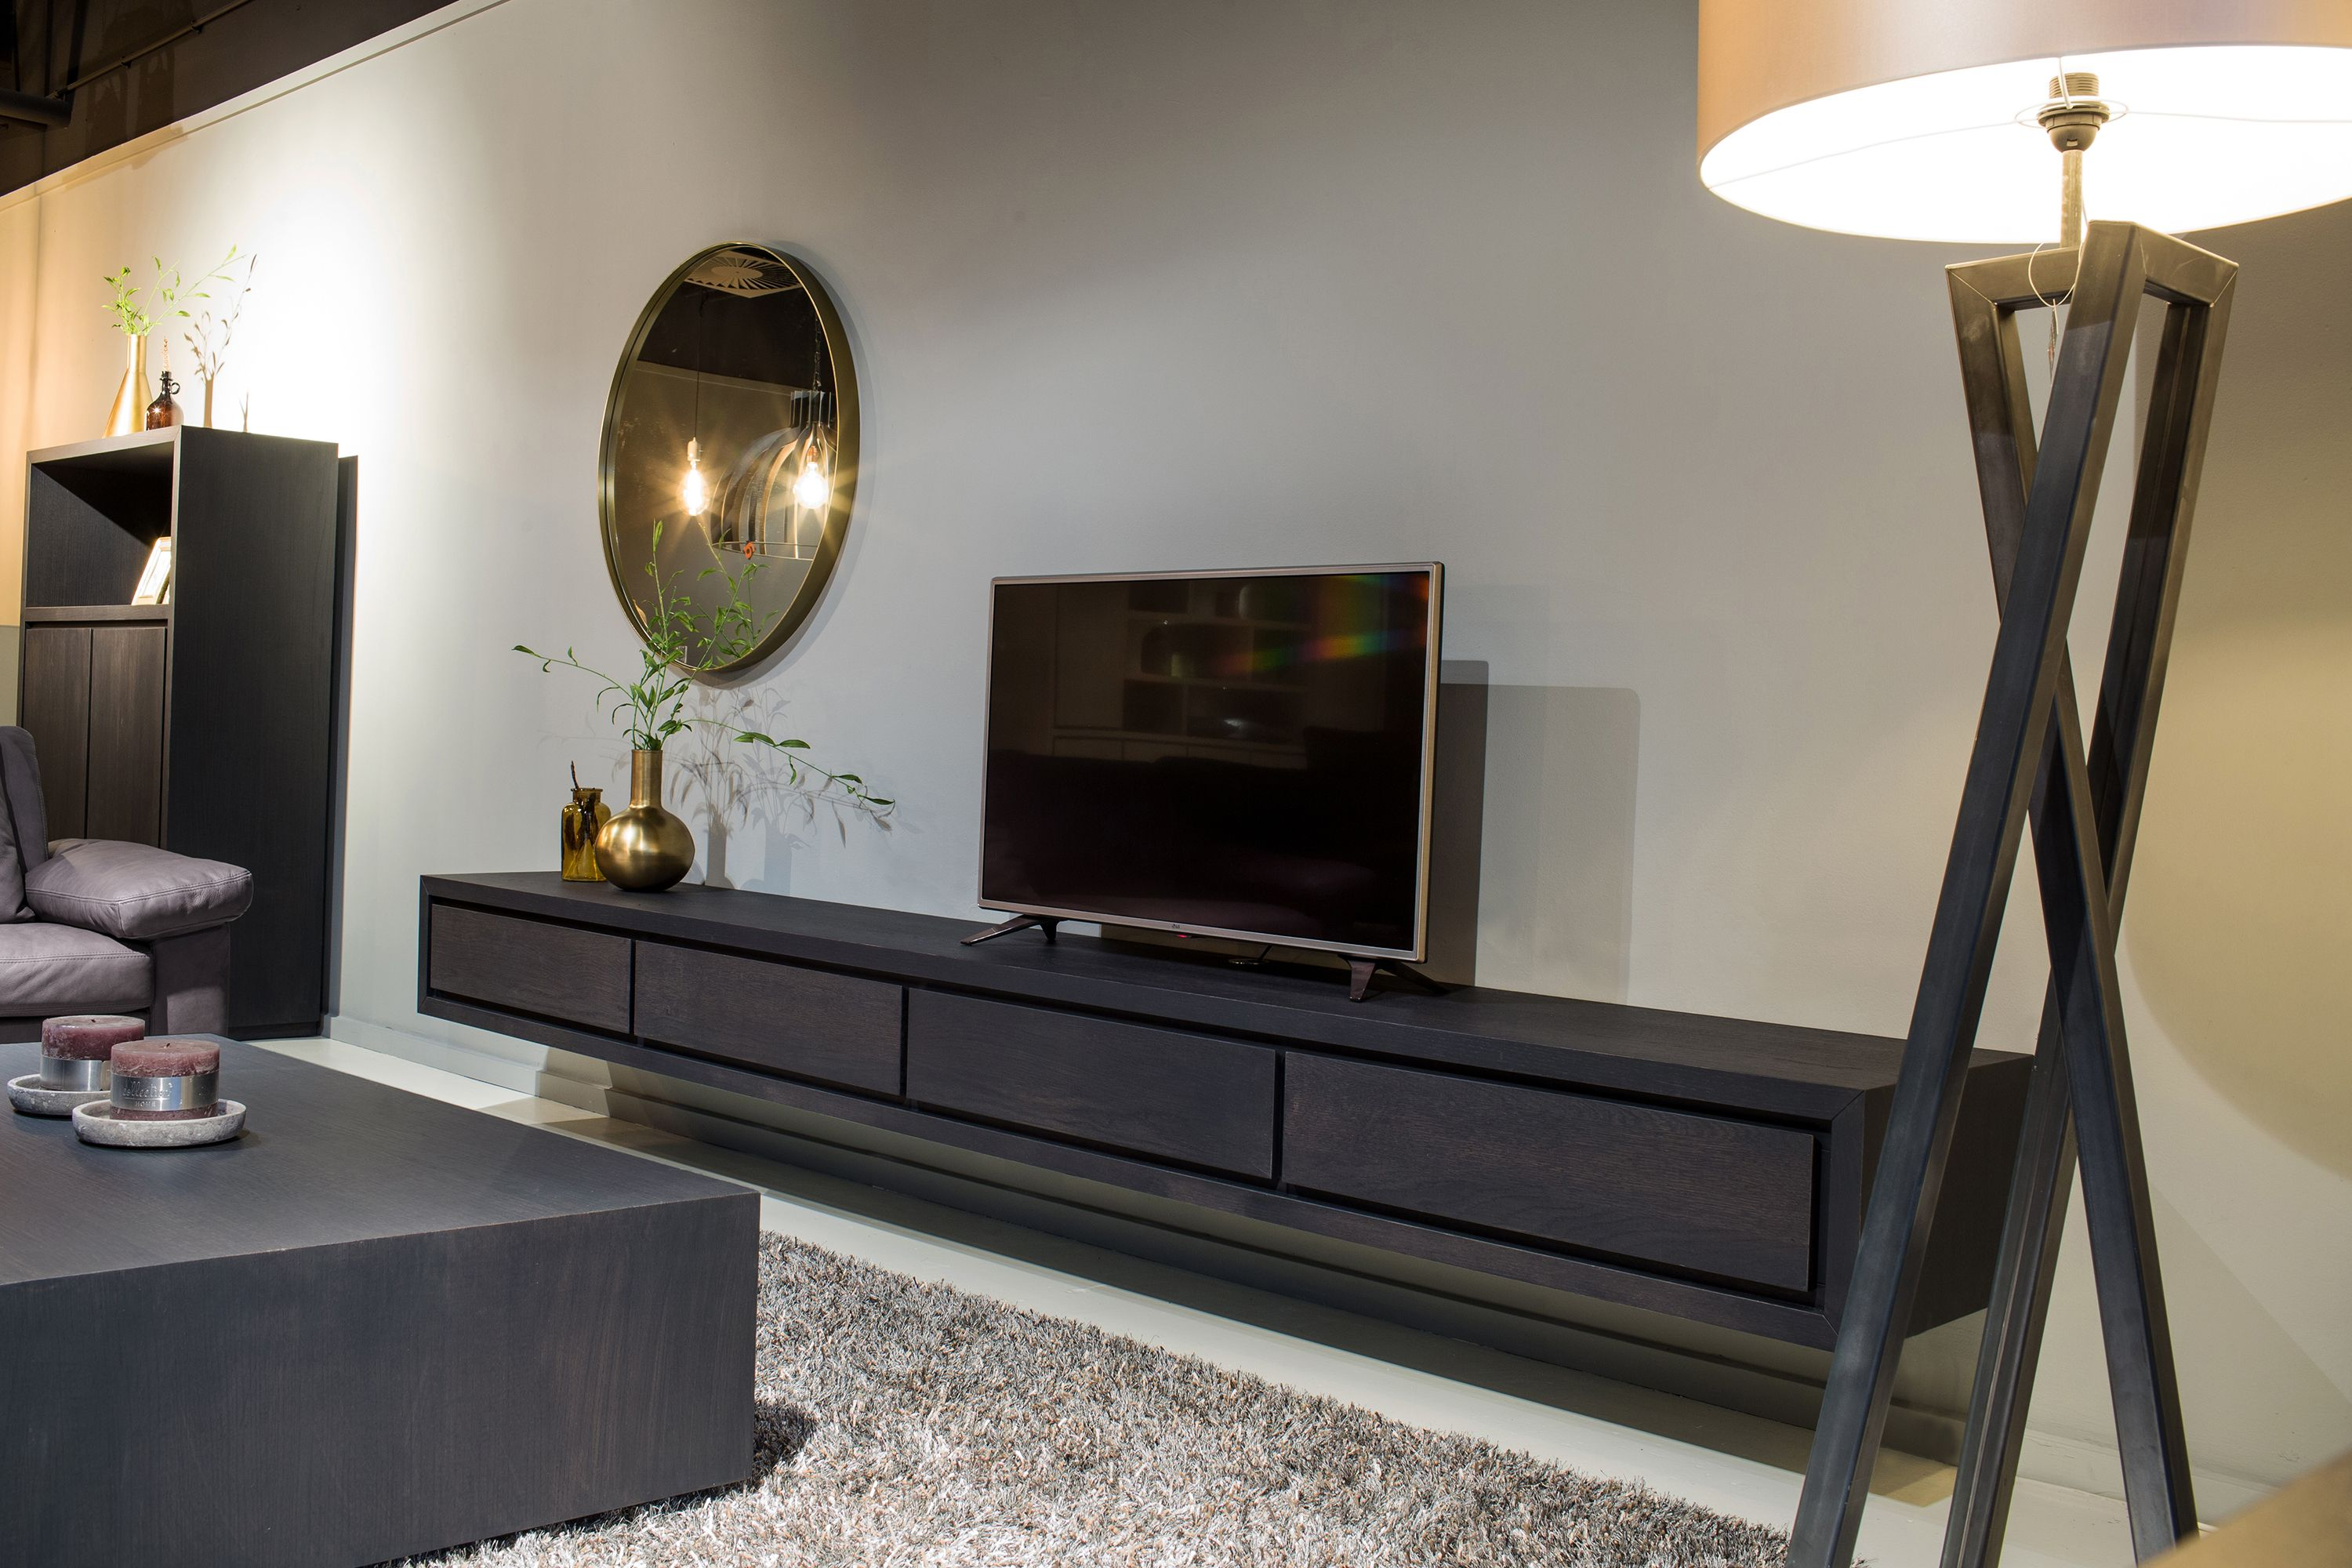 Tv Kast Salon Tafel.Canyon Salontafel Meubels Dressoir